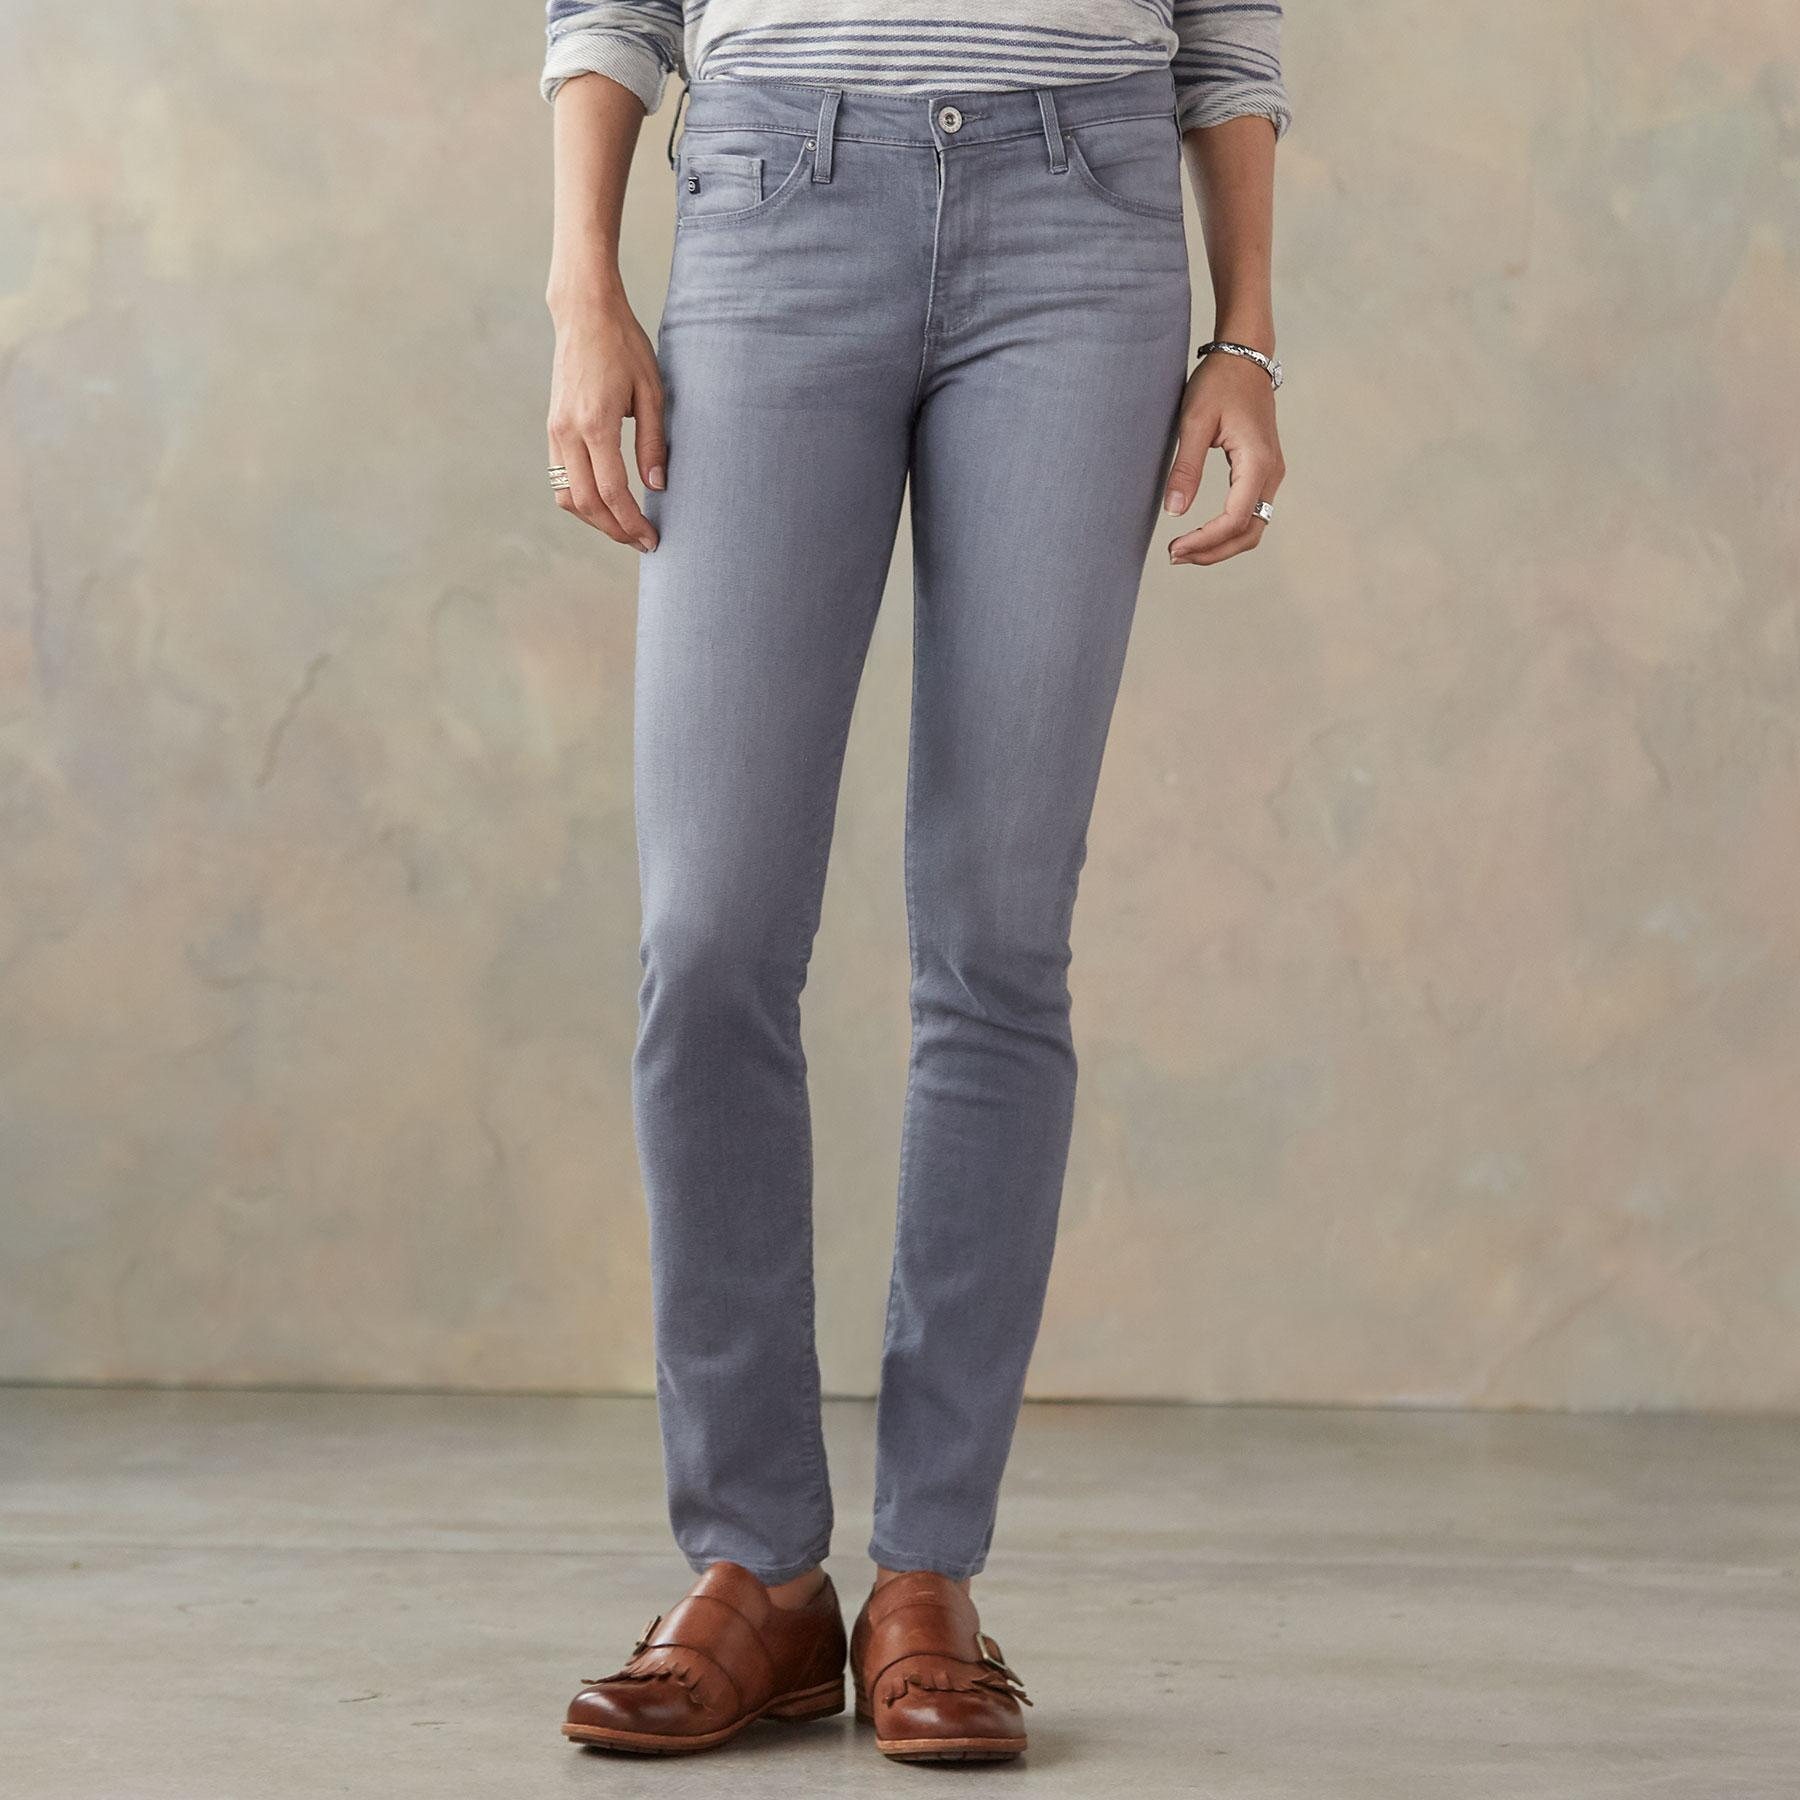 PRIMA VALLEY JEANS: View 1